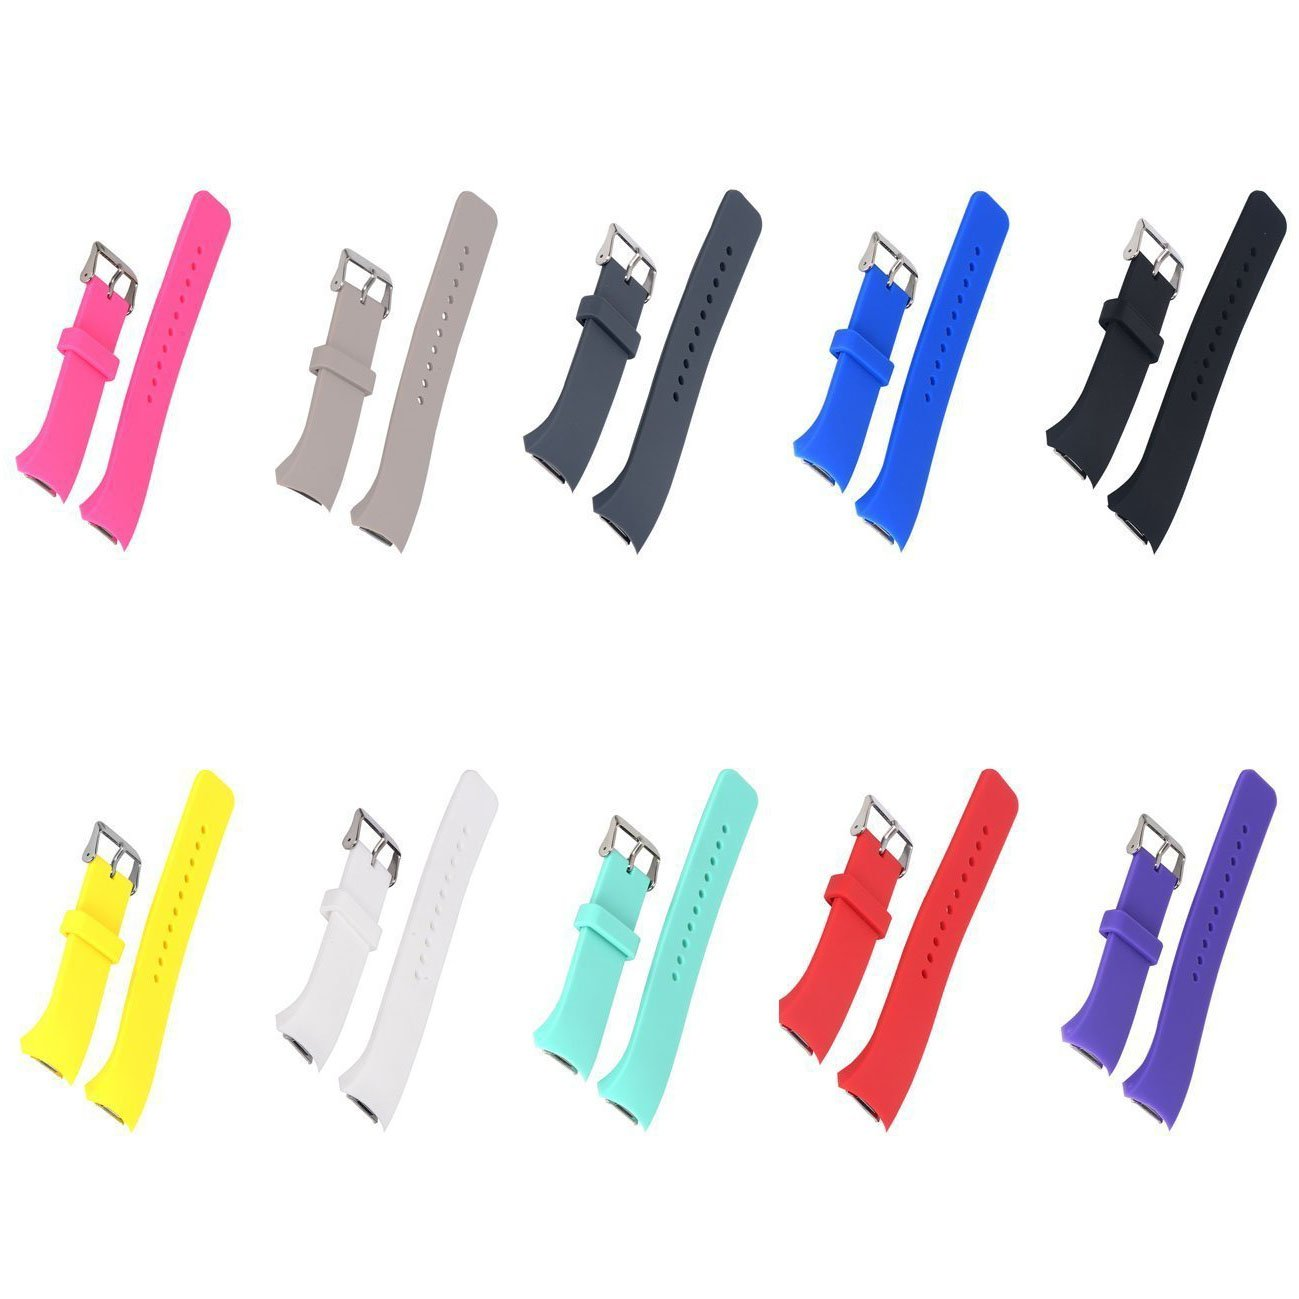 E ECSEM 10pcs Small Bands for Gear Fit2 Pro Watch, Replacement Soft Silicone Bands Straps for Samsung Gear Fit2 Pro Smart Fitness Band and Samsung Gear Fit2 Smartwatch : Mix A